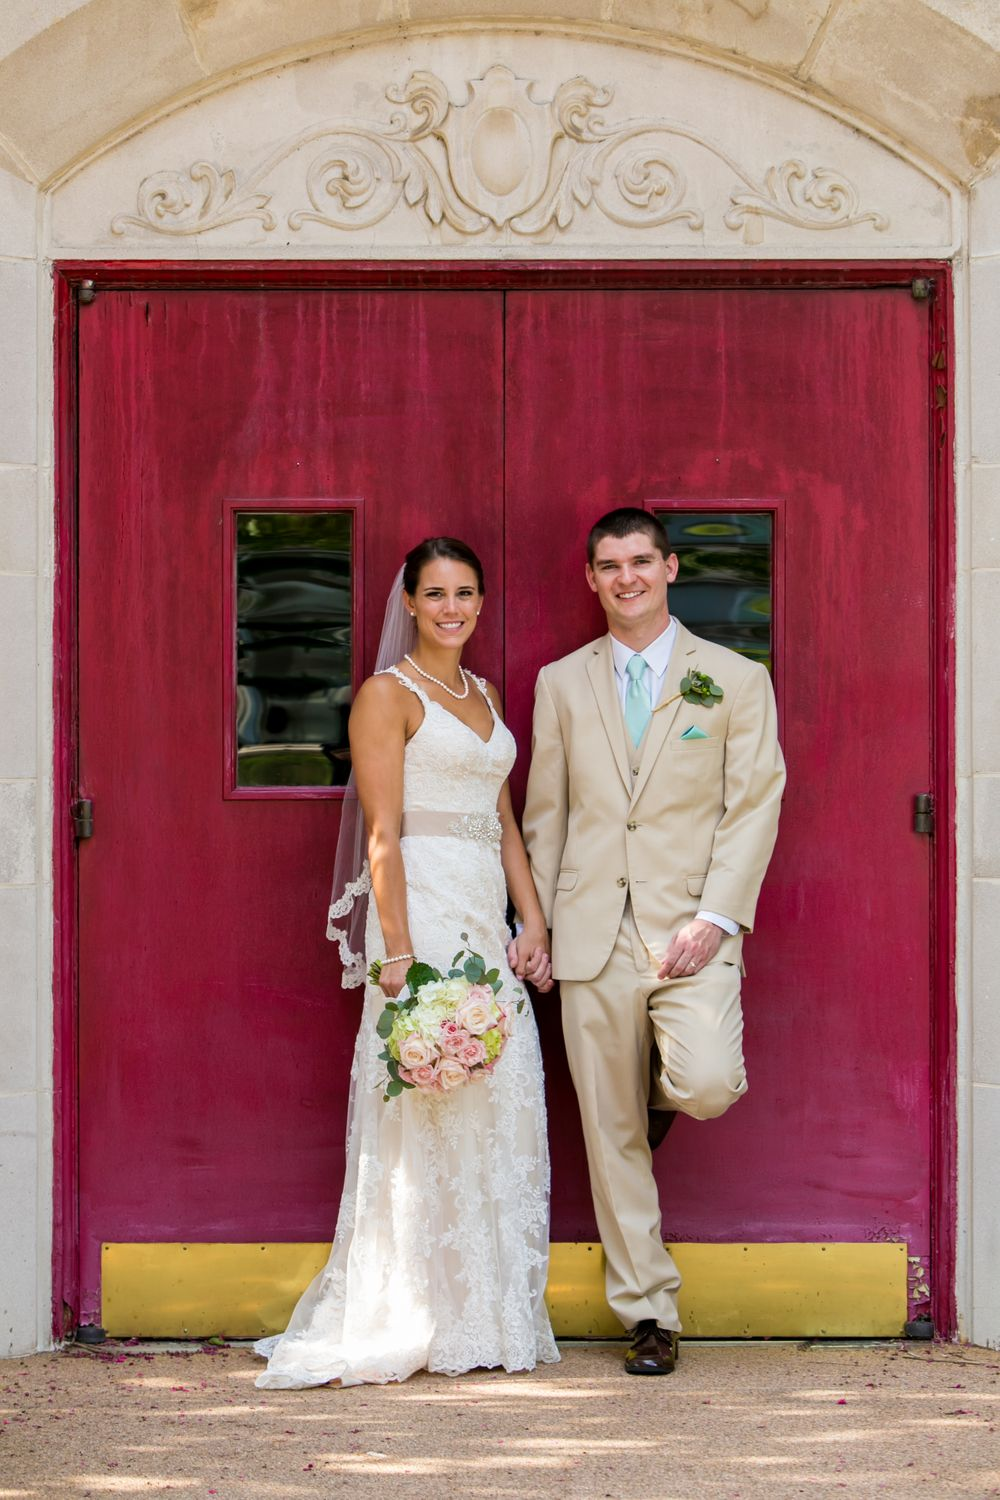 Alex & Michael kiss in front of the front red door after their wedding at Incarnation Lutheran Church in Columbia, SC.